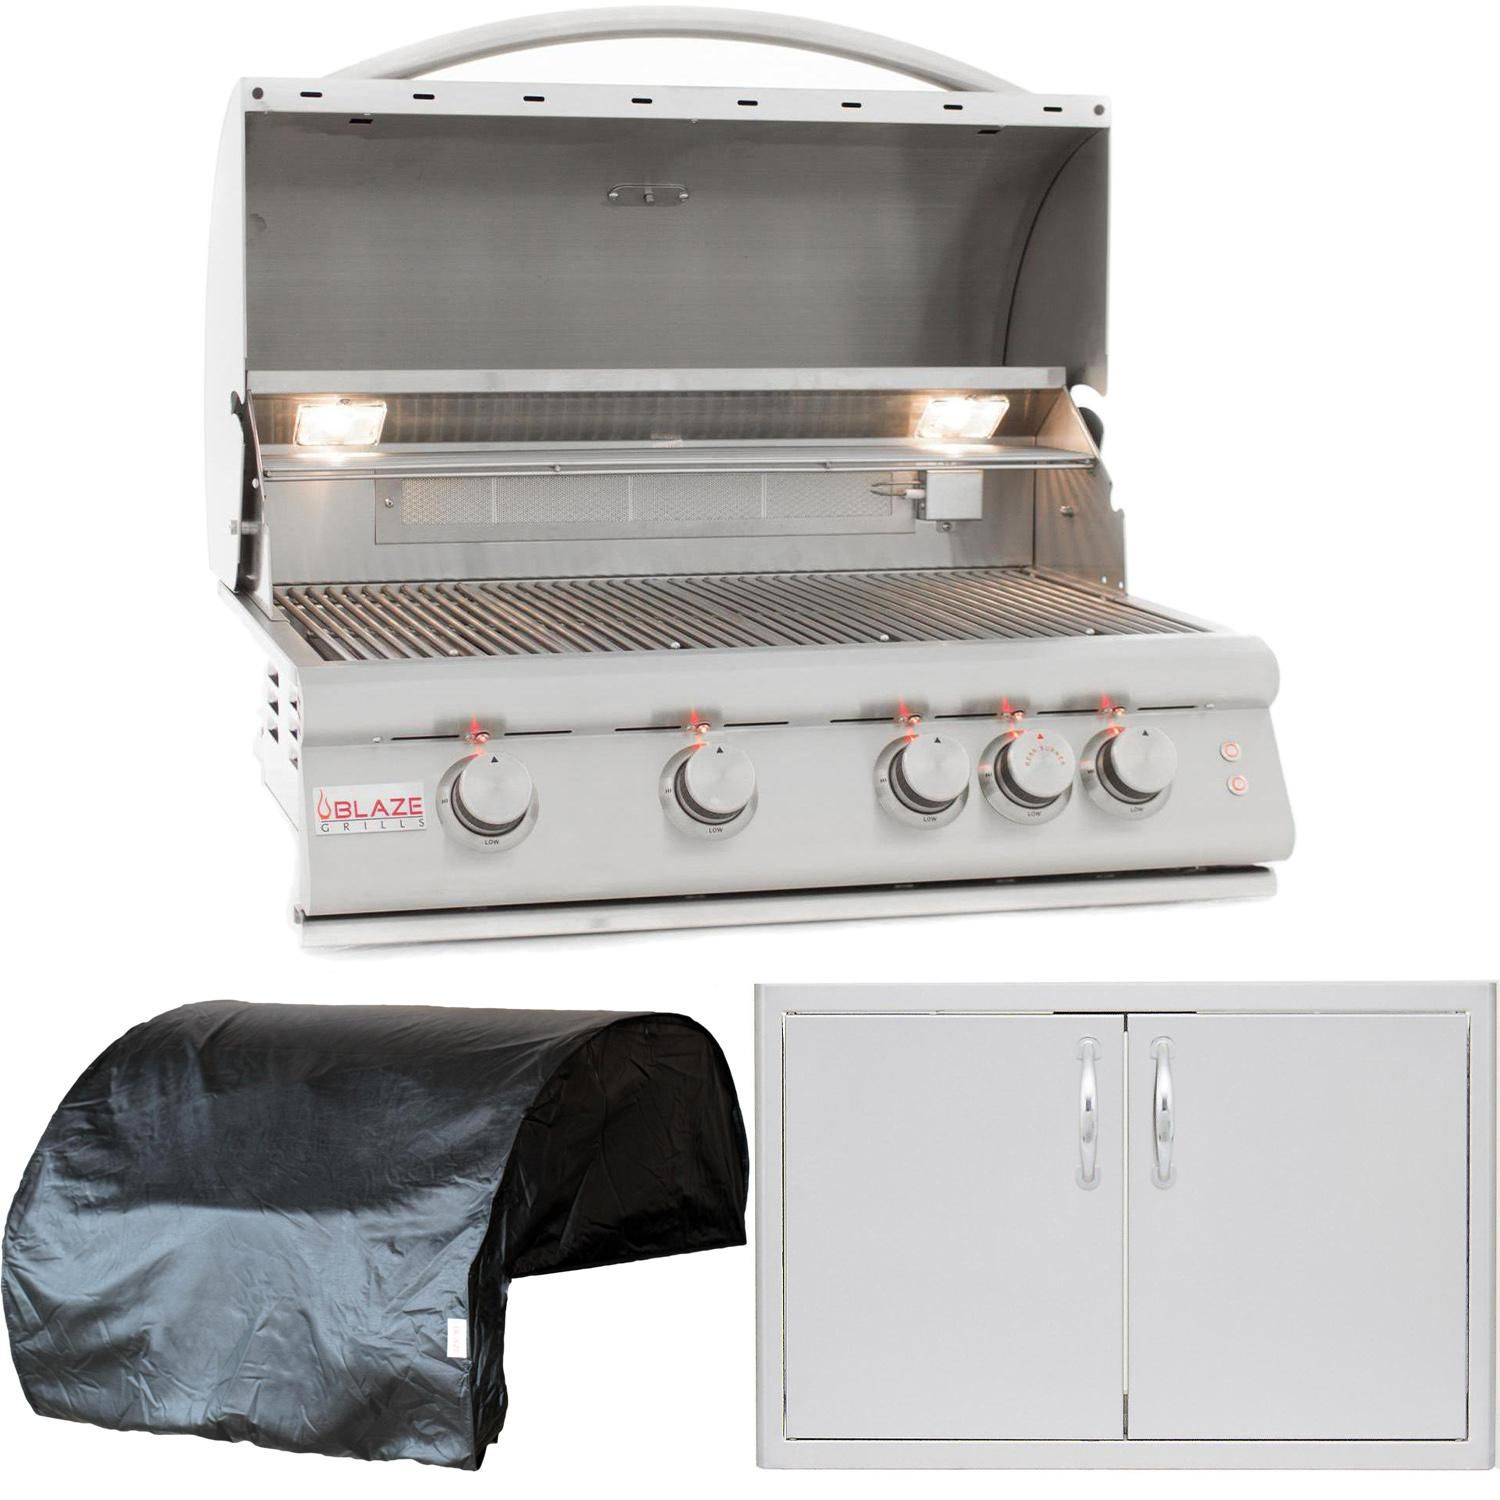 Blaze Outdoor Products Lte 3 Piece 32 Propane Gas Outdoor Kitchen Package Blz 4lte2 Lp 4bicv Blz Ad32 R Propane Gas Grill Stainless Steel Doors Stainless Steel Grill